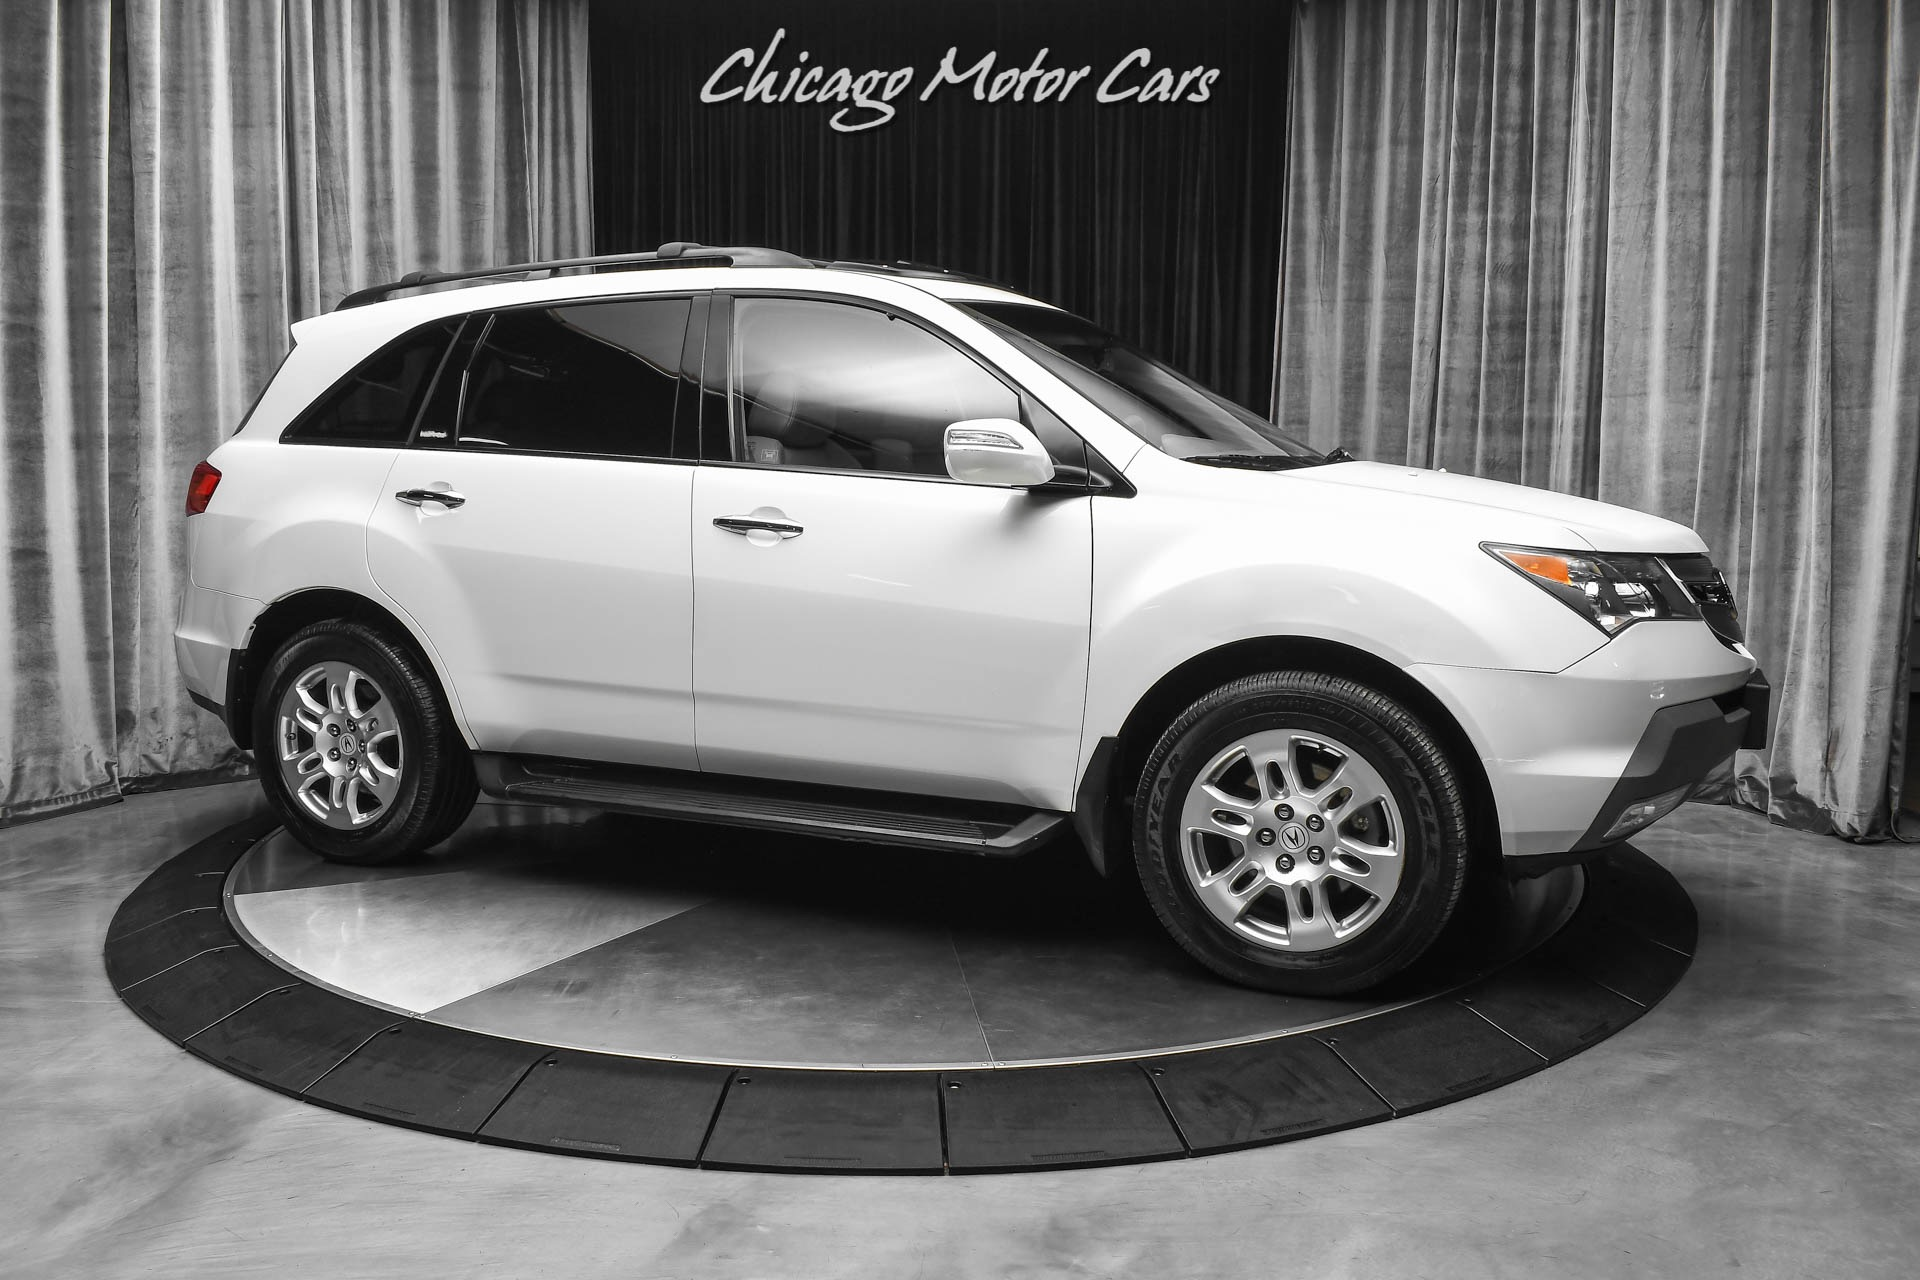 Used-2008-Acura-MDX-SH-AWD-wPower-Tailgate-wTech